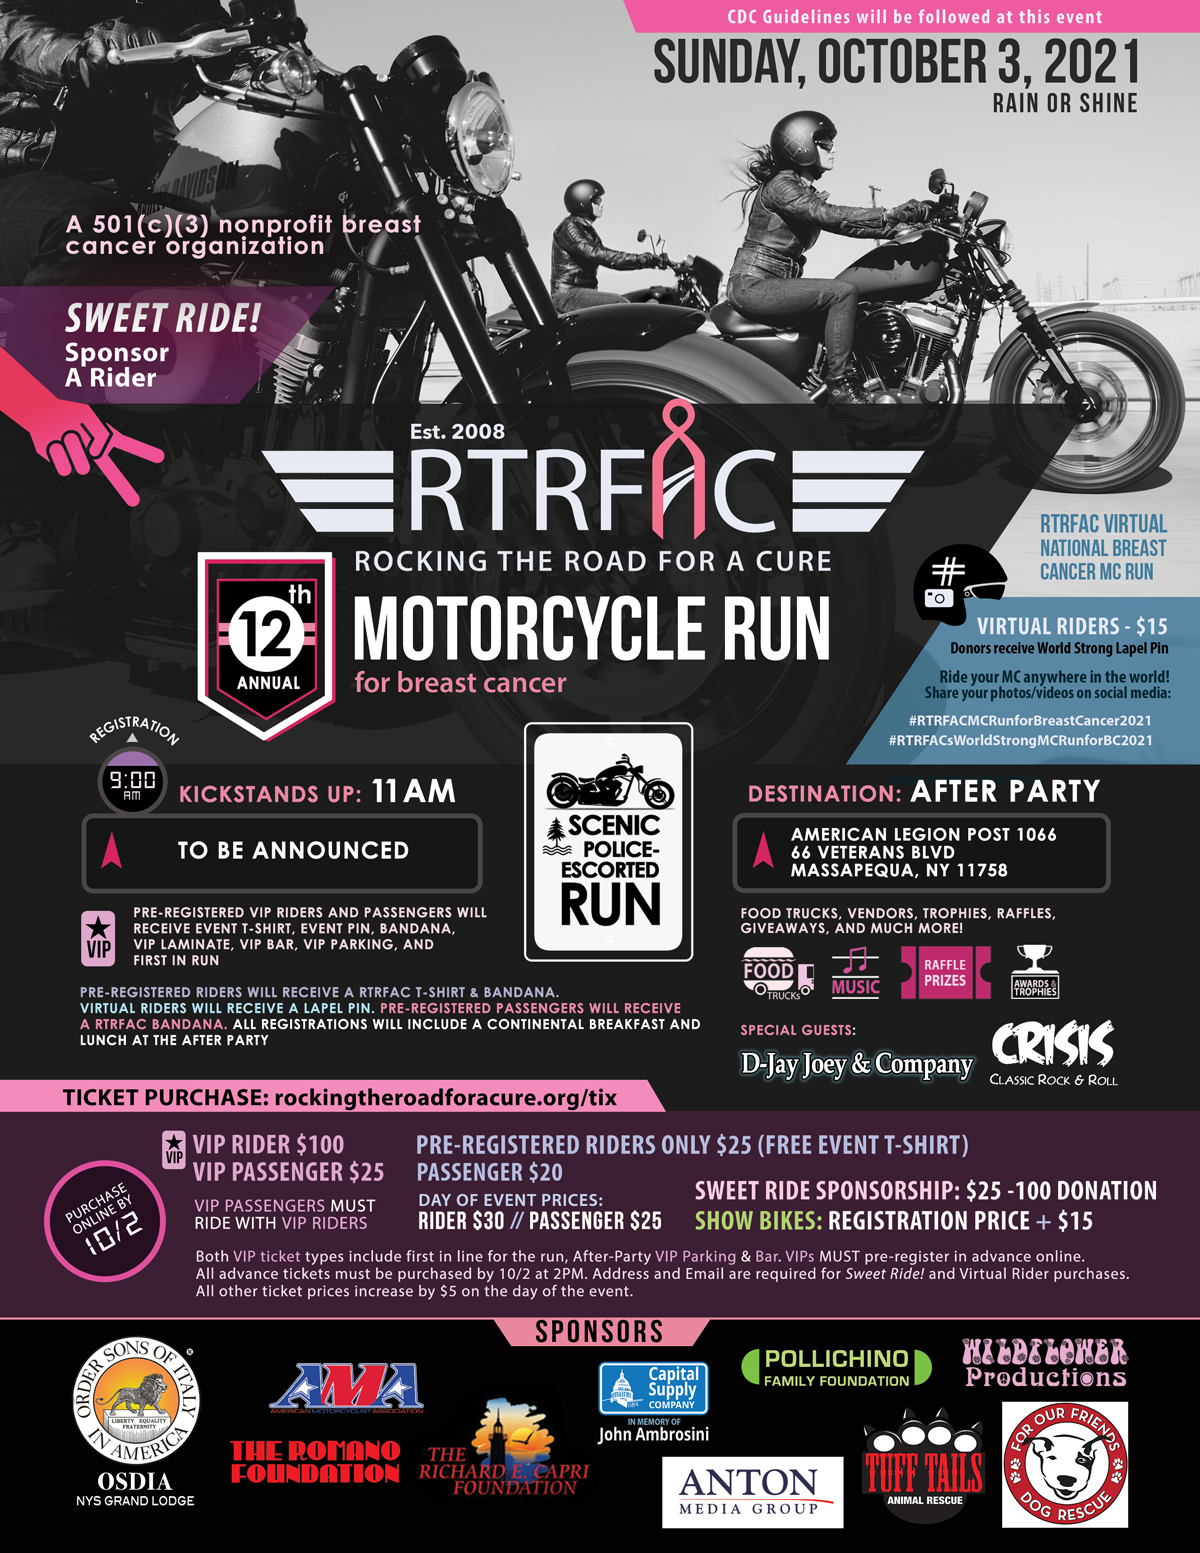 Flyer for Rocking The Road For a Cure's 12th Annual Motorcycle Run for breast cancer